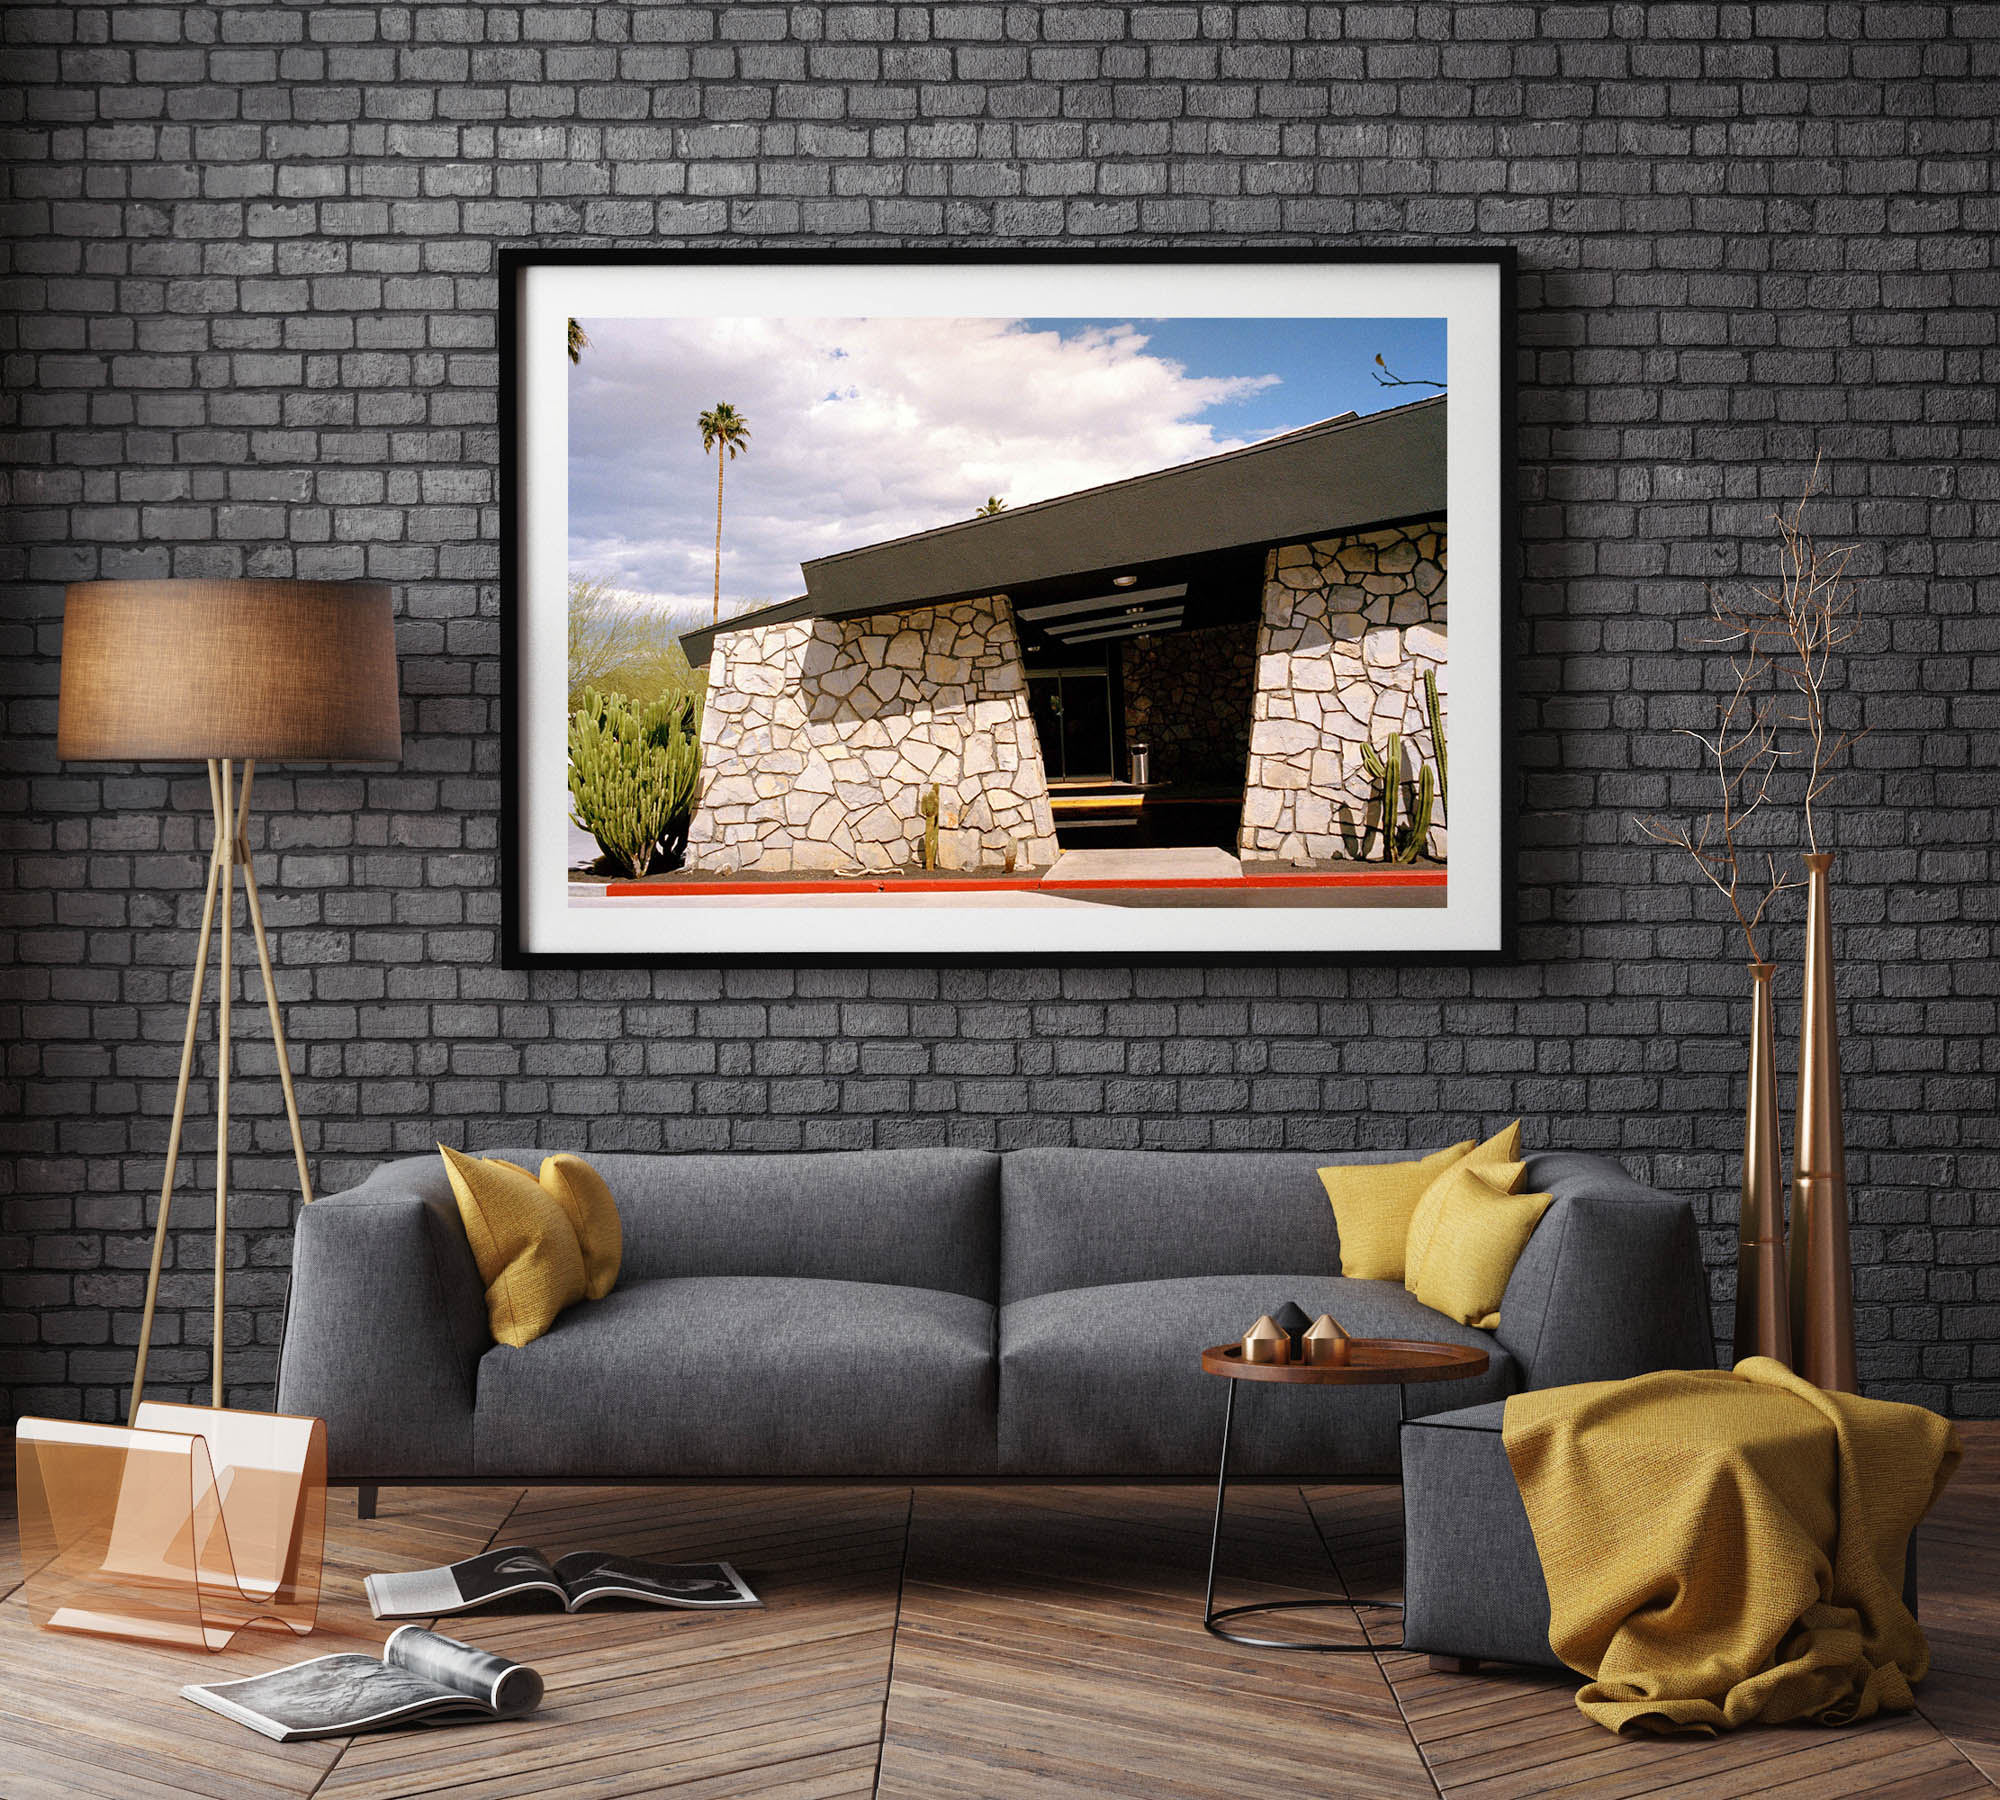 A photography of the Ace Hotel stone wall in Palm Springs. A retro mid century building. Retro, mid century, Artwork, Prints wall art California Photographic prints Ocean Palm Springs Framed artwork, Photography,  Film photography, Vintage photo style,  Interior design, beach, Buy Art, photography art, buy art, Prints for sale, art prints, colour photography, surfing, surfboard, Palm Springs,  surfing, sun, beach,